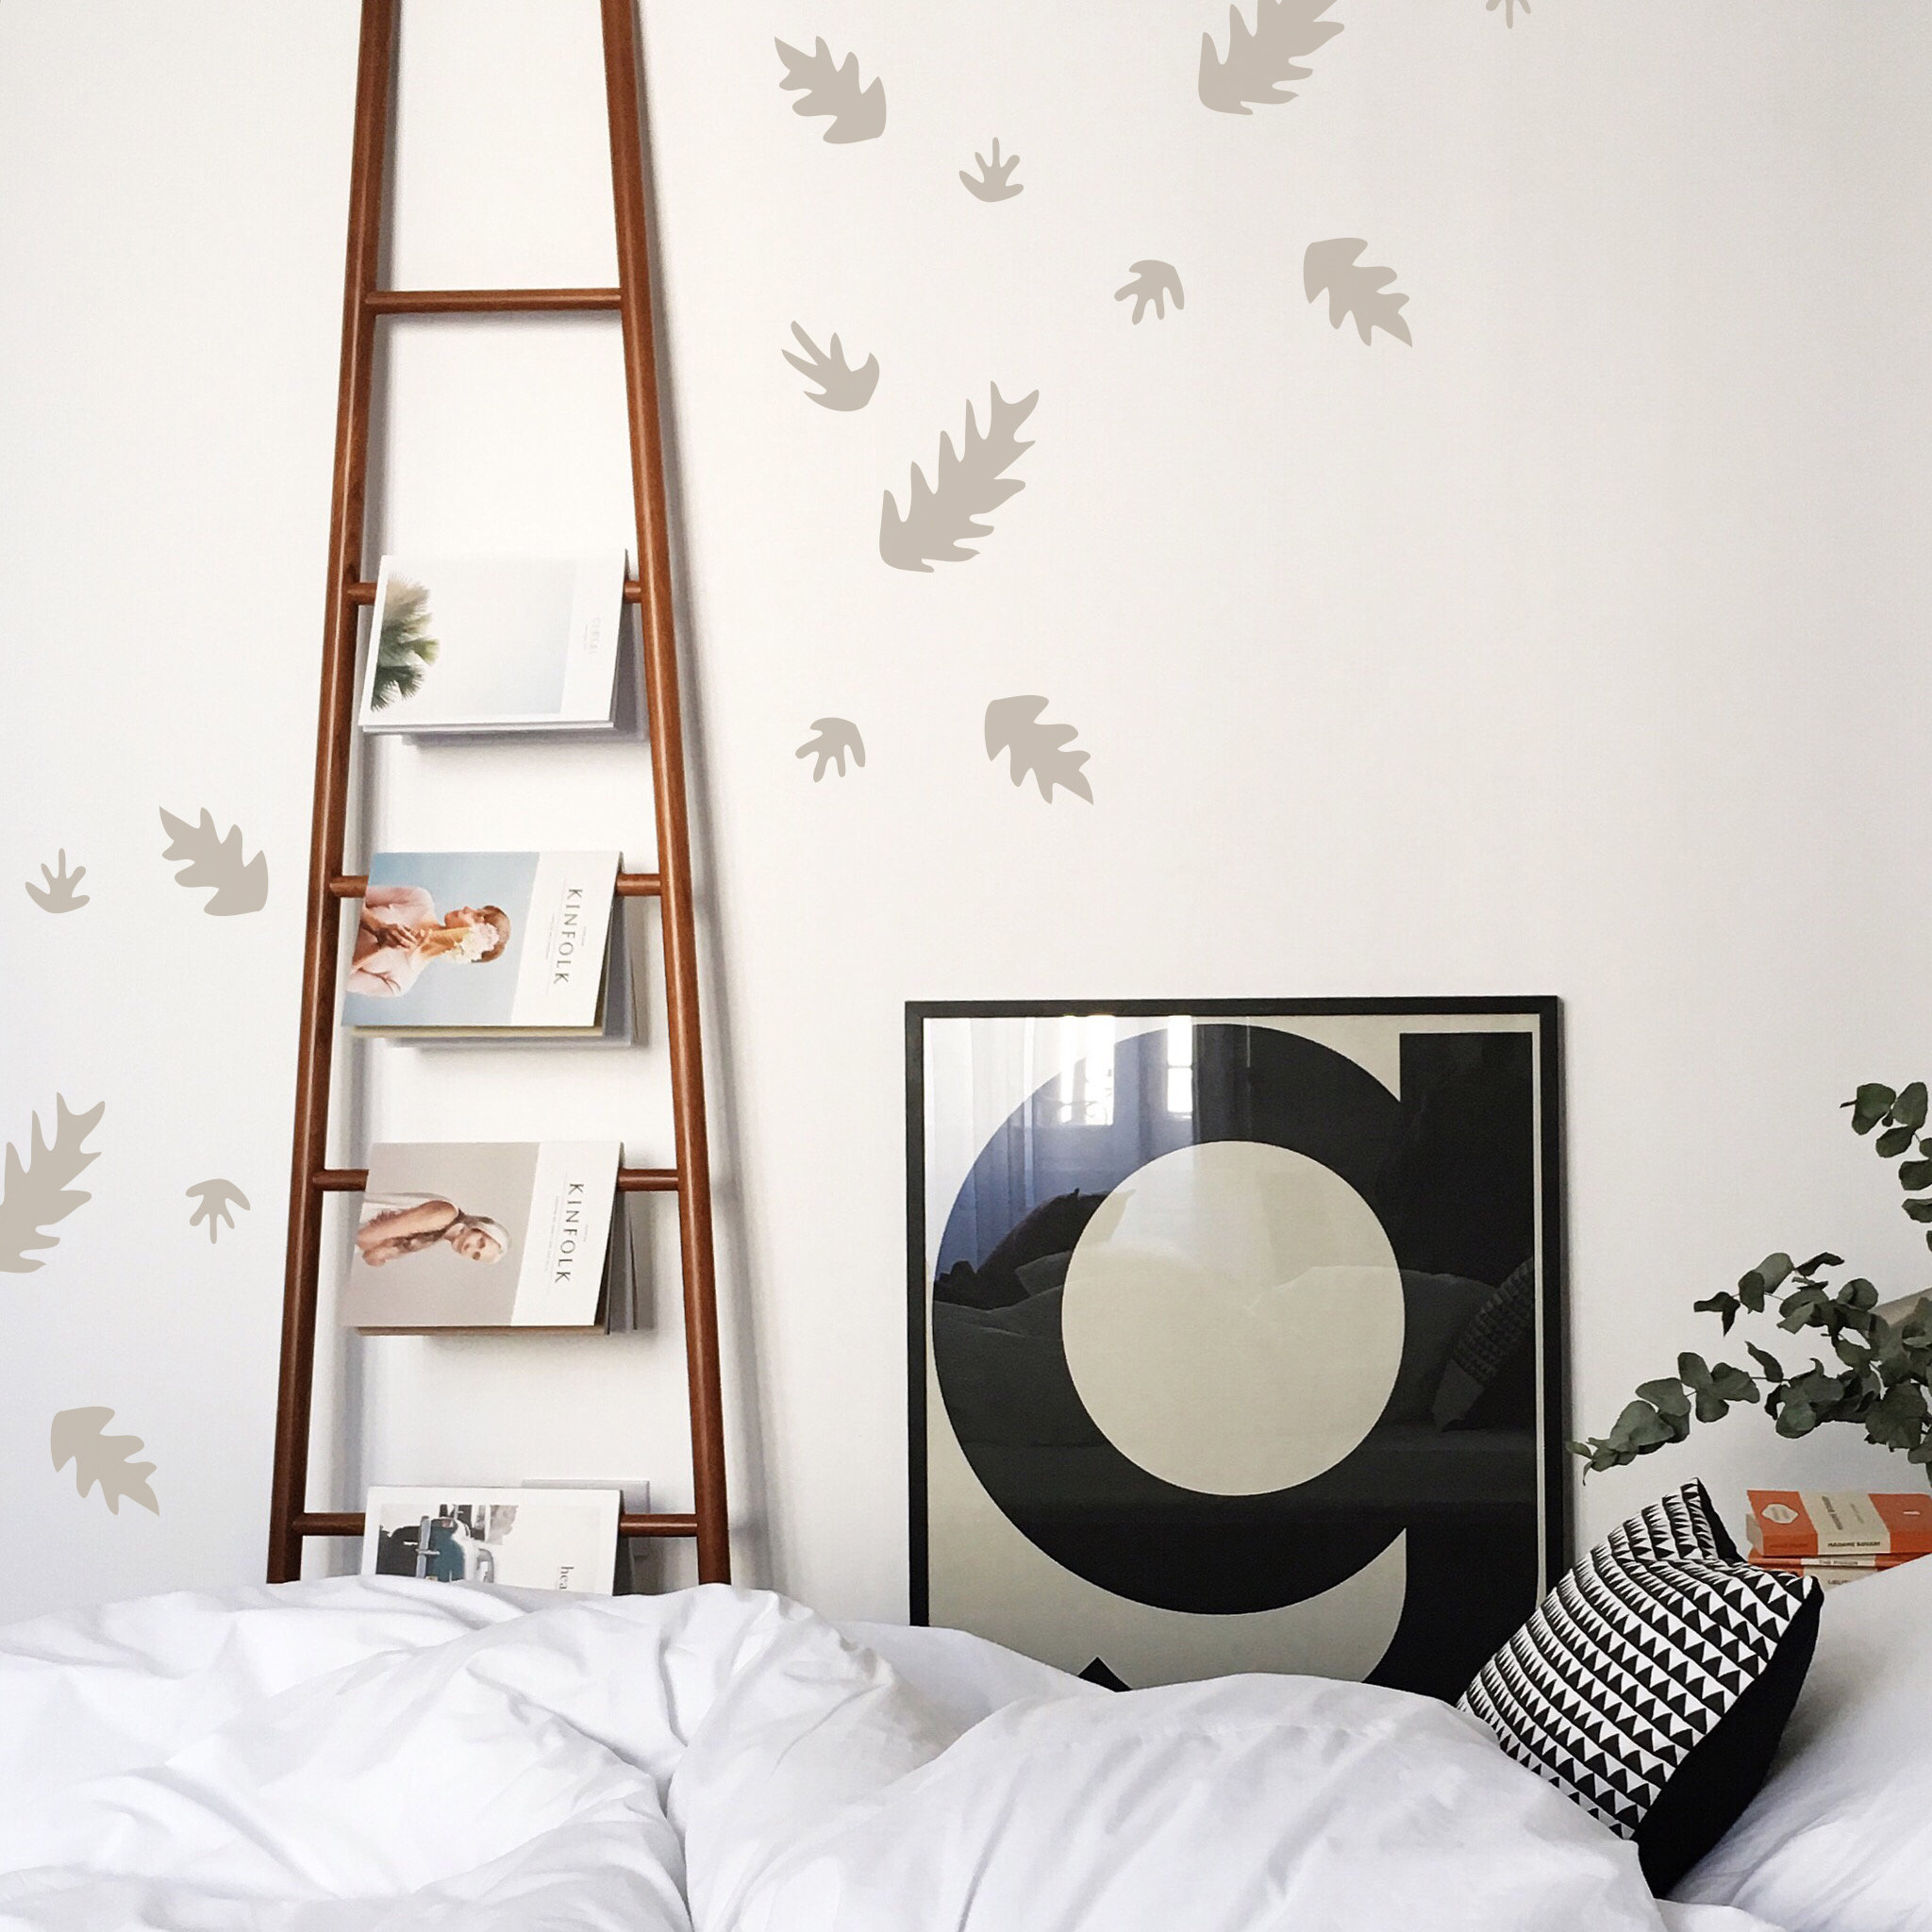 Wall Decal - Falling Leaves - Wall Sticker - Room Decor with Flowing Leaves Wall Decor (Image 30 of 30)